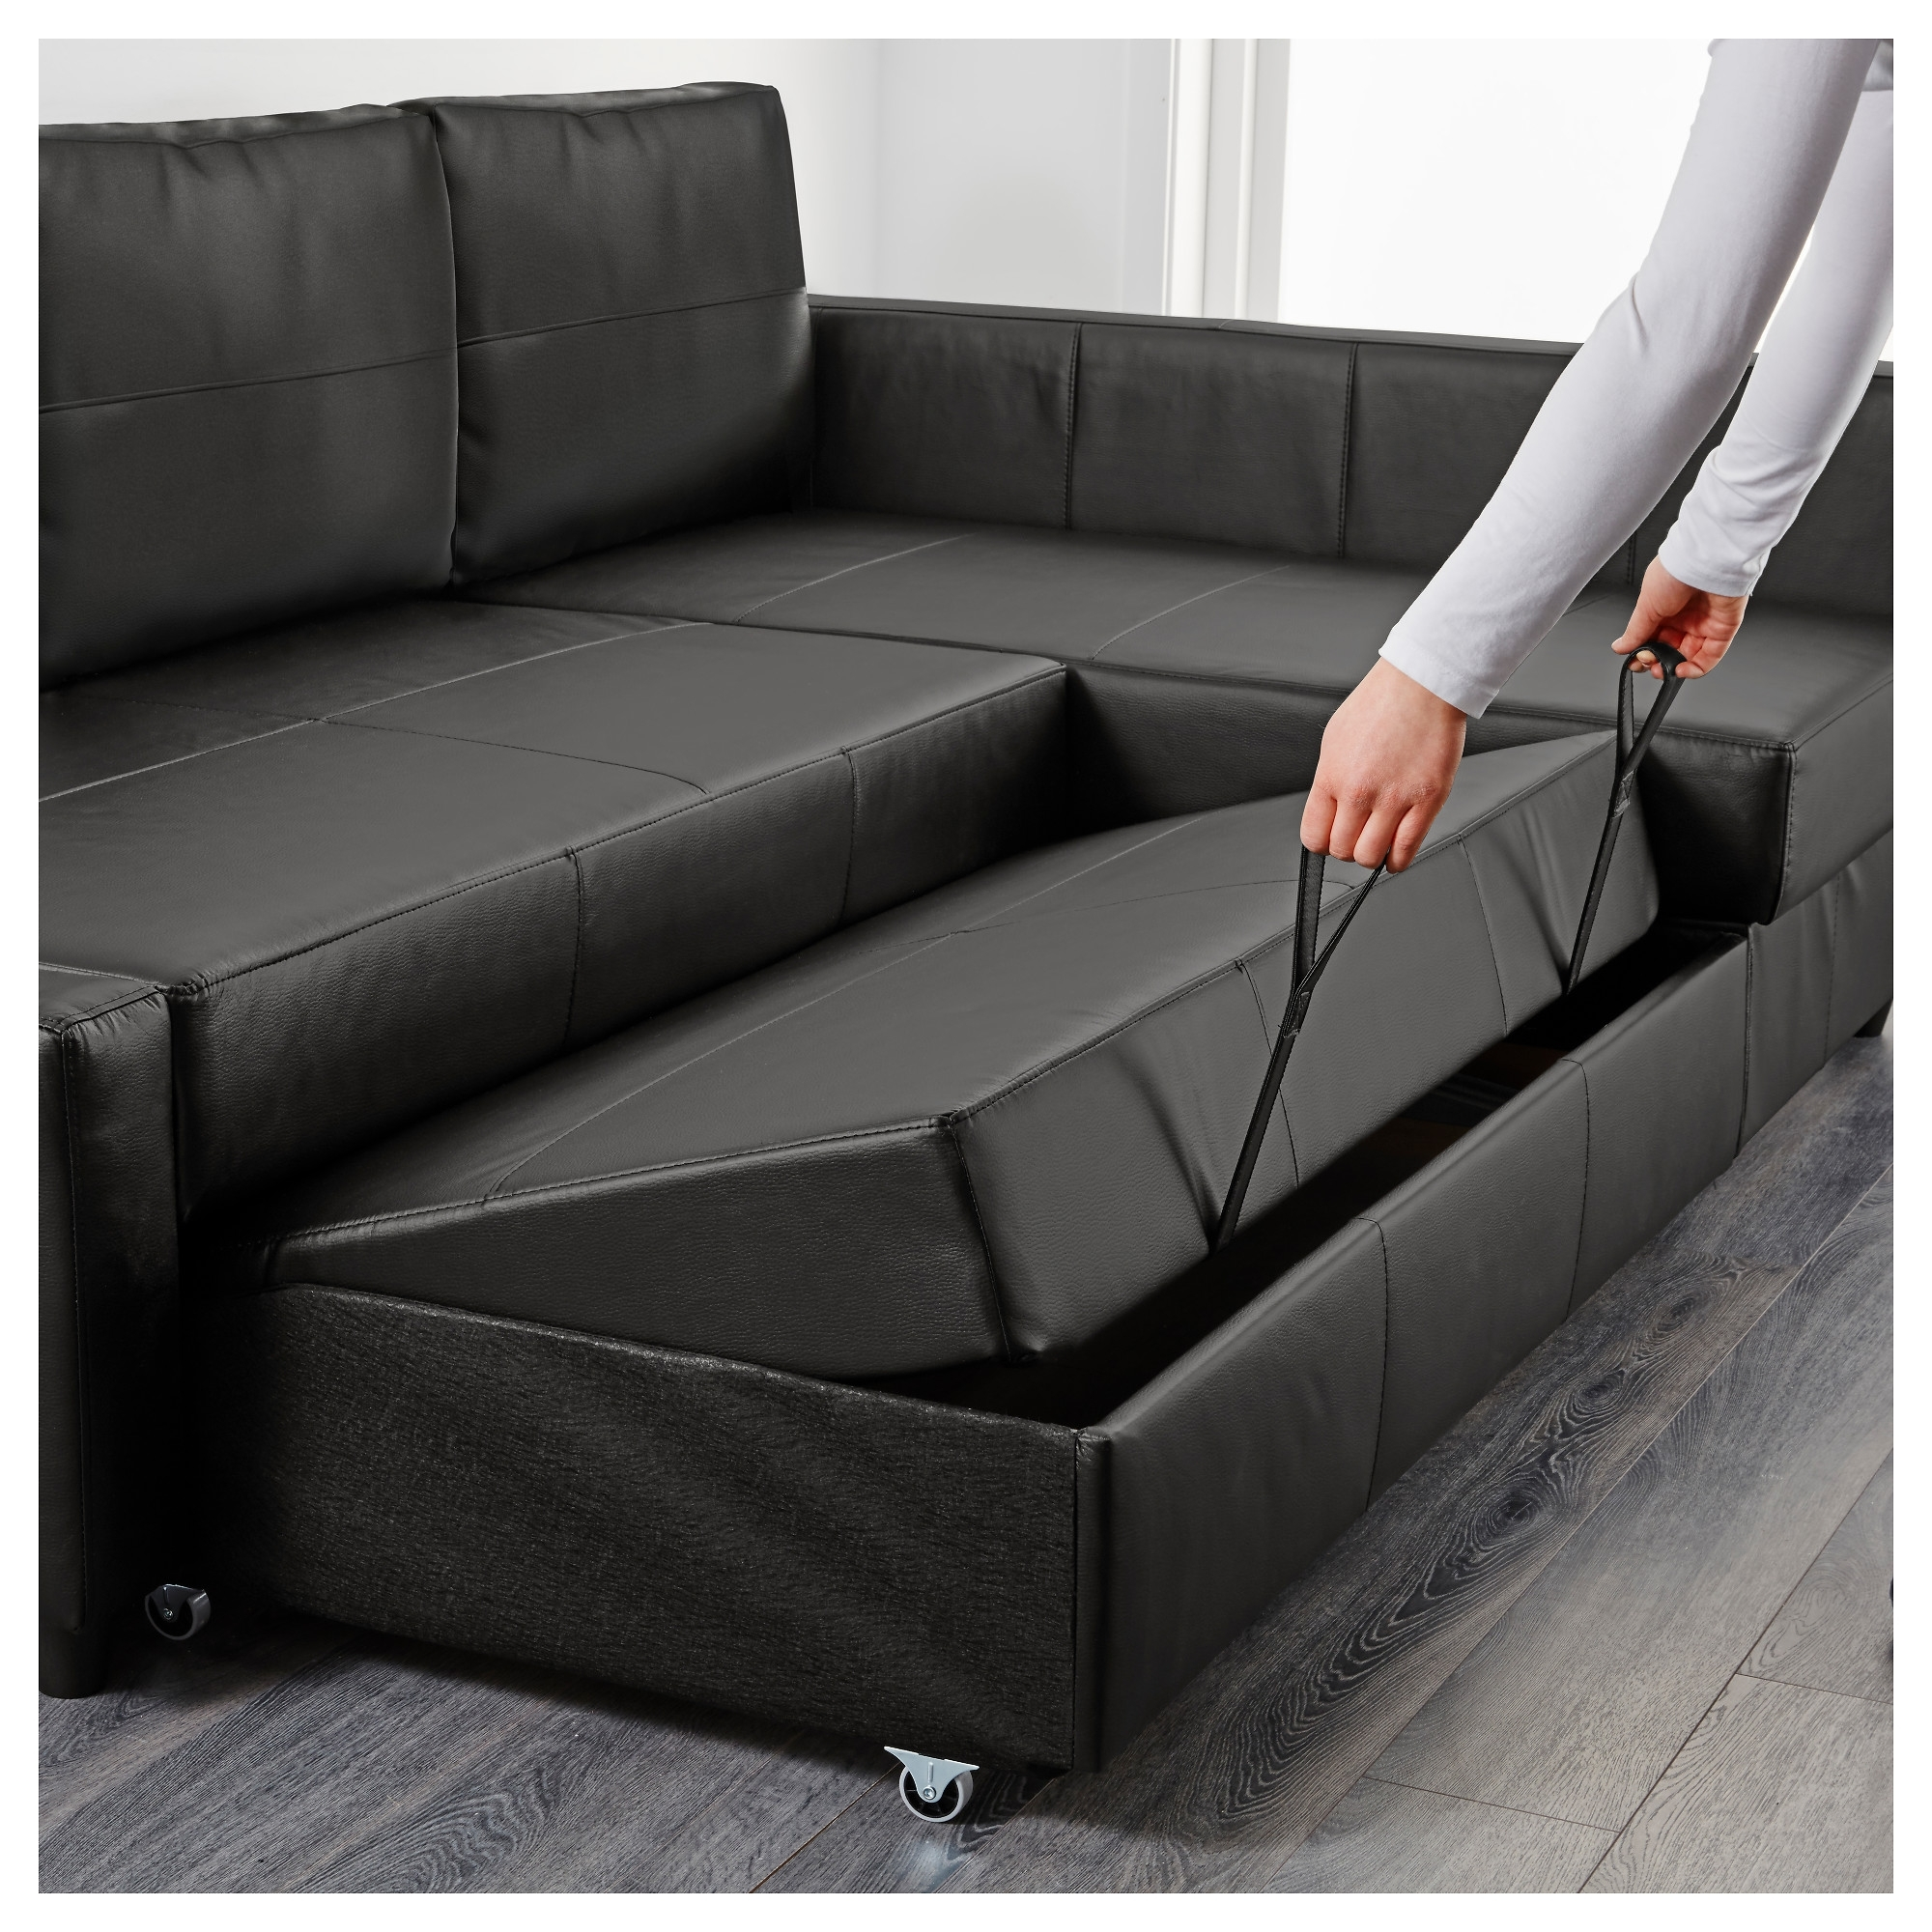 Trendy Ikea Corner Sofas With Storage Intended For Friheten Corner Sofa Bed With Storage Bomstad Black – Ikea (View 2 of 15)